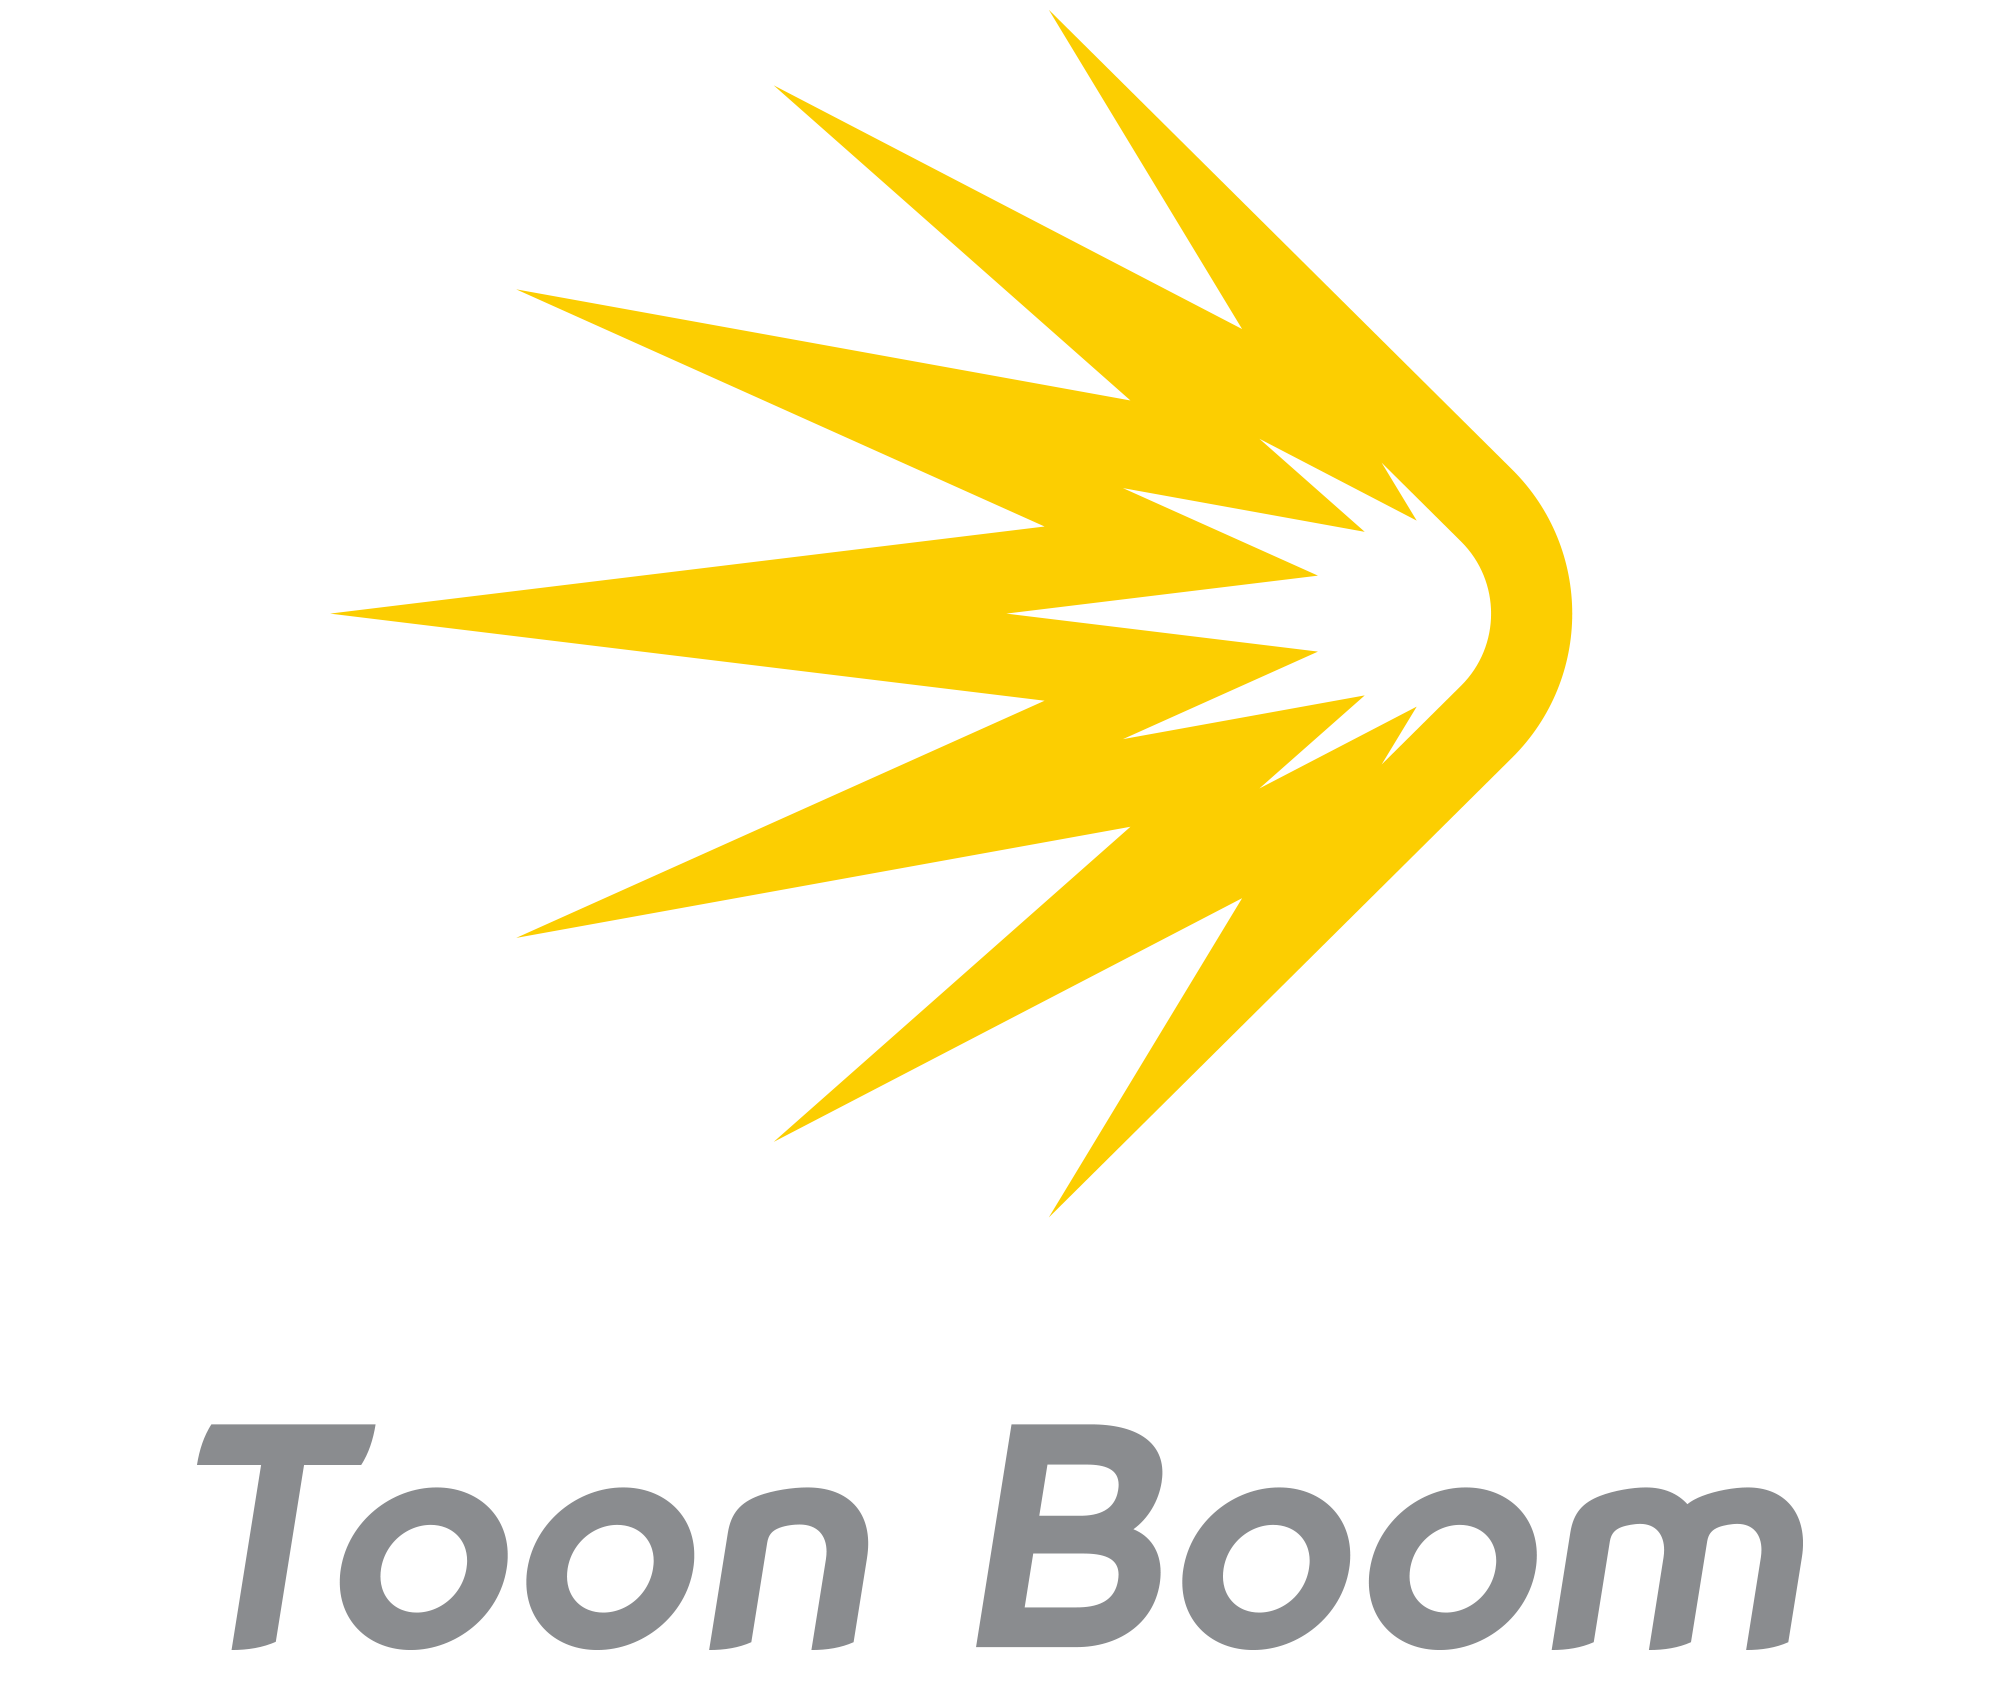 ToonBoom_NoTag_Vertical_Color.png